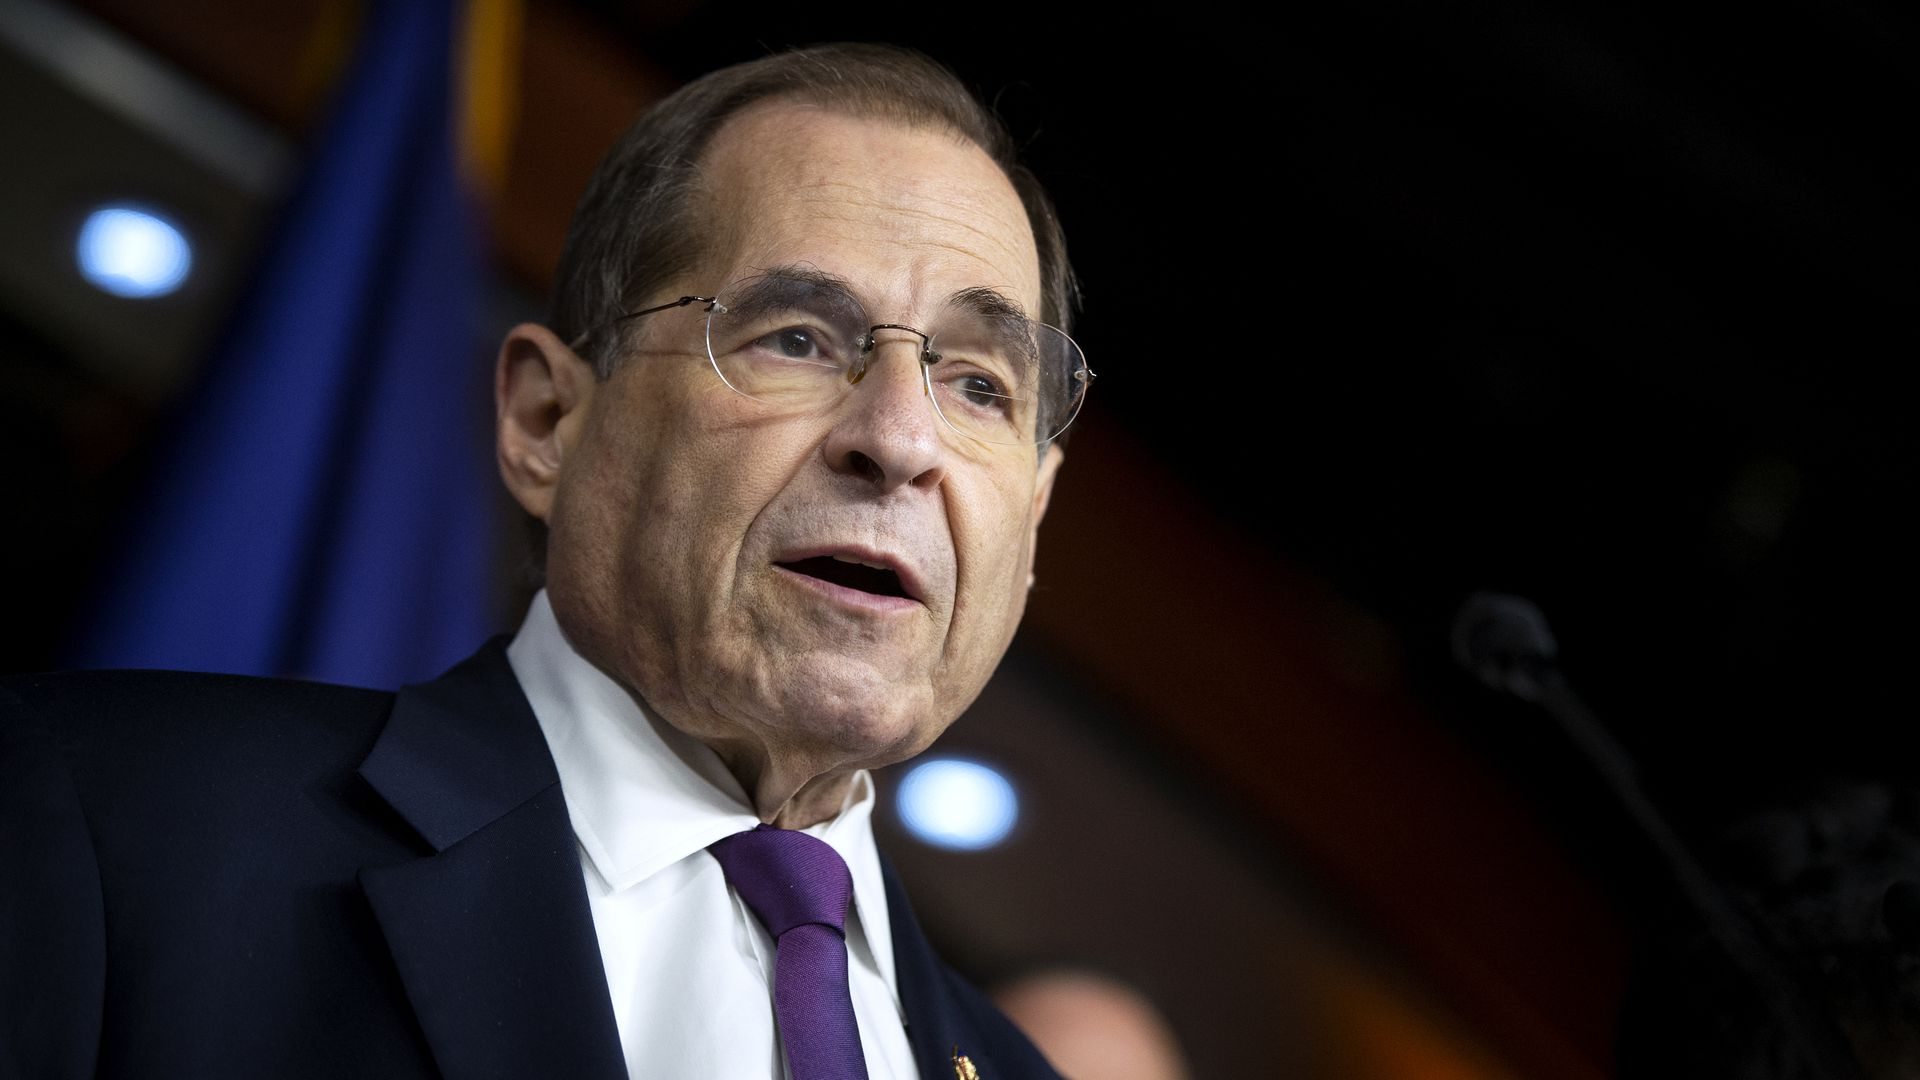 House Judiciary Committee Chairman Jerrold Nadler speaks to reporters on July 26, 2019.